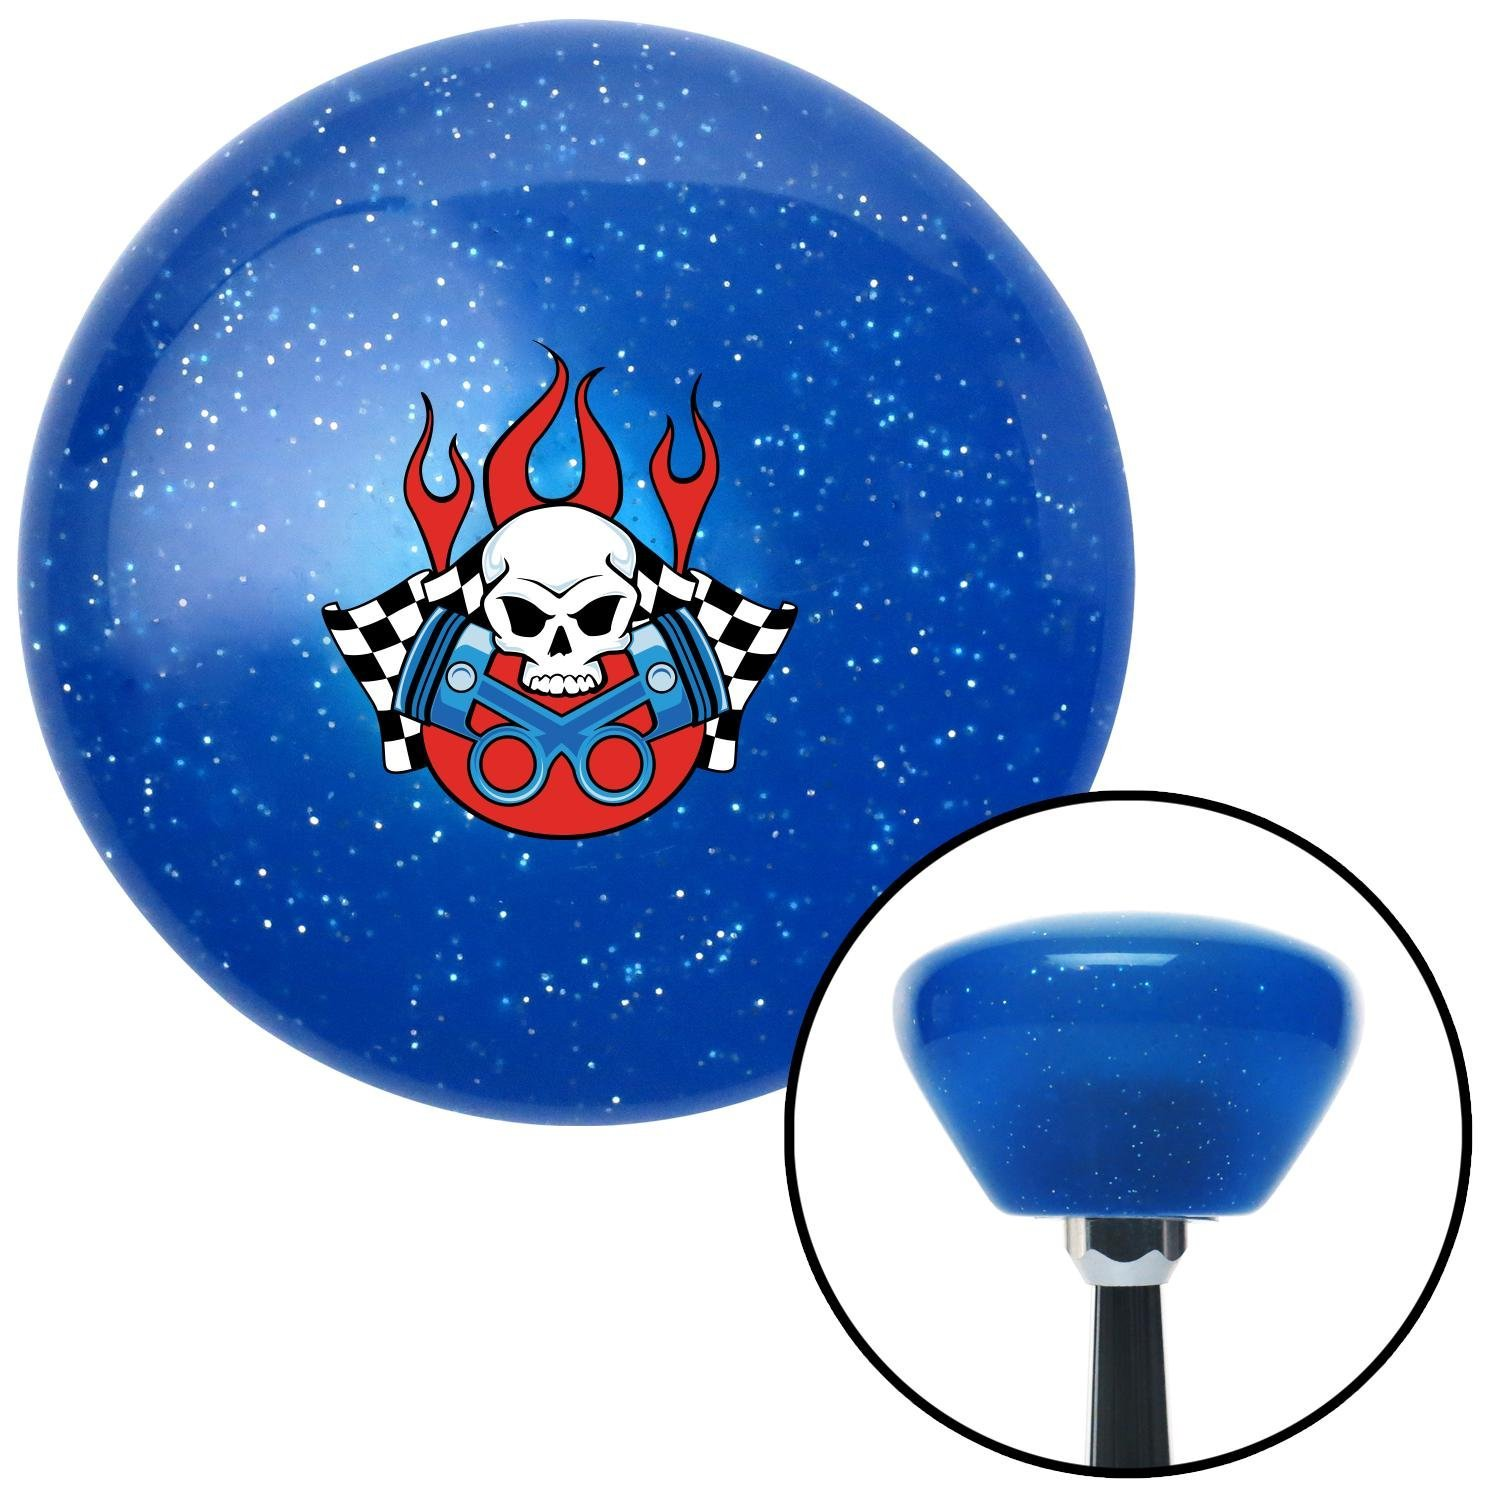 Skull and Pistons 2 American Shifter 191452 Blue Retro Metal Flake Shift Knob with M16 x 1.5 Insert